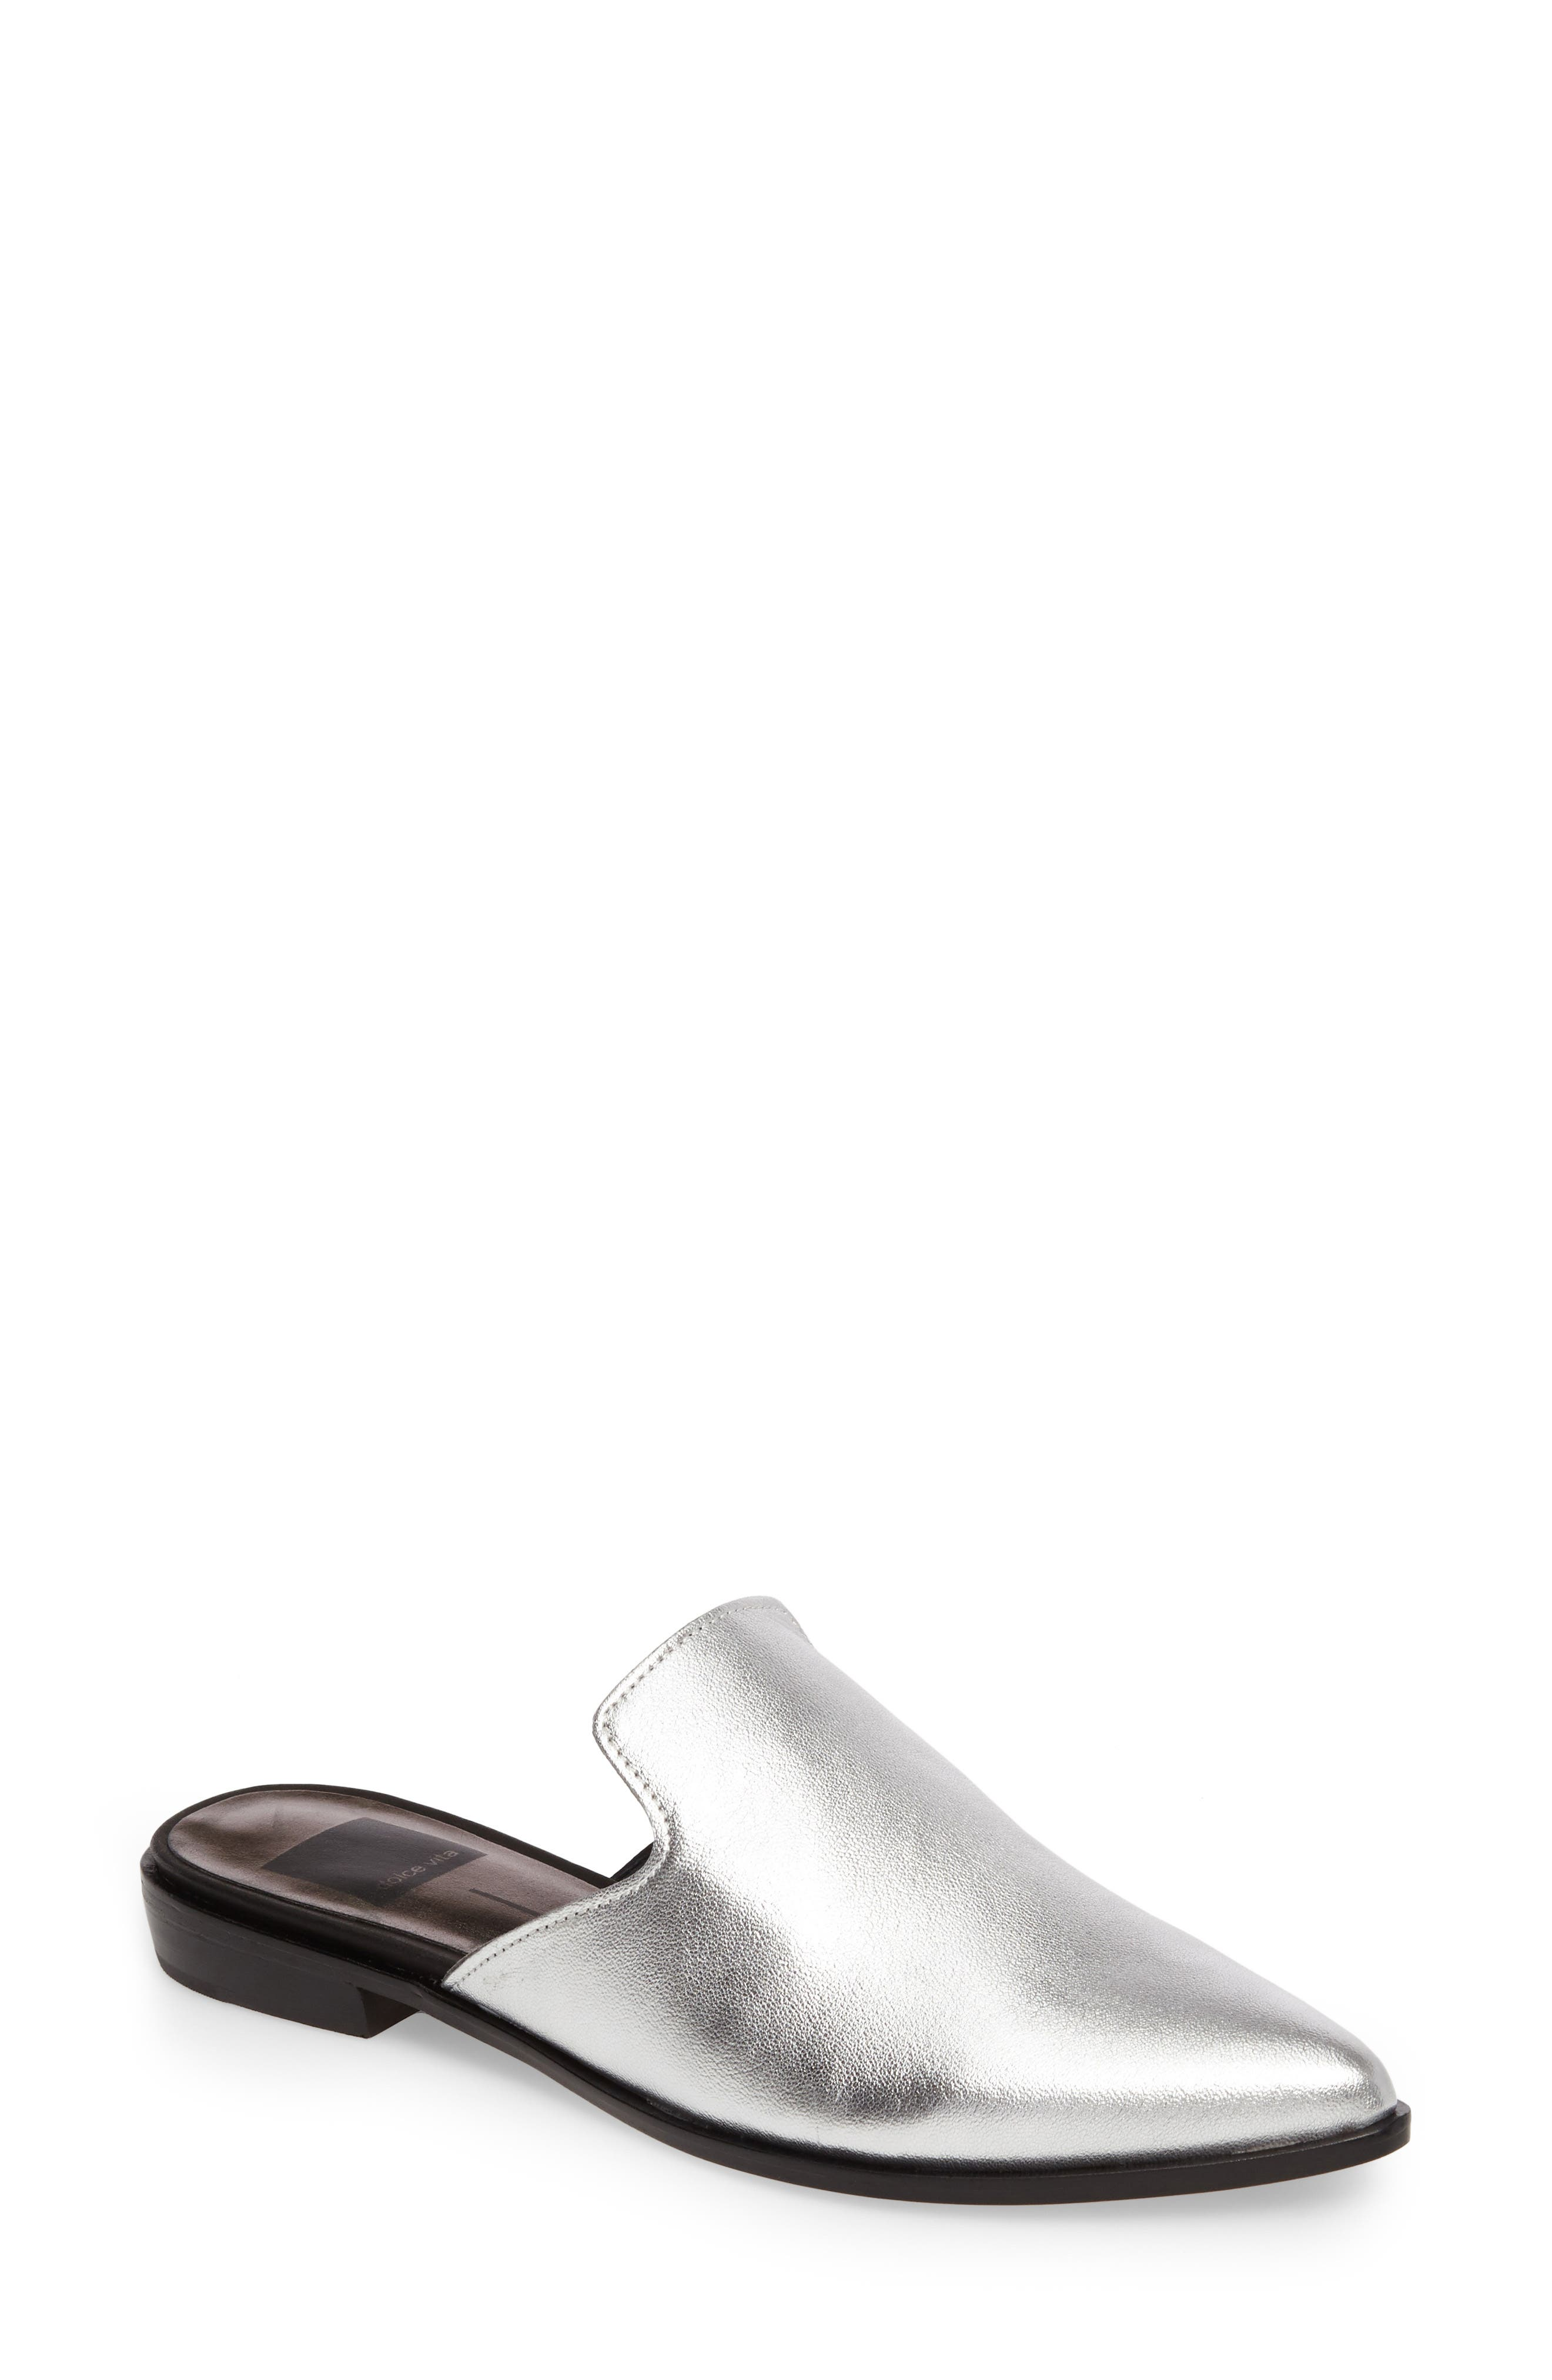 Holli Loafer Mule,                         Main,                         color, Silver Leather